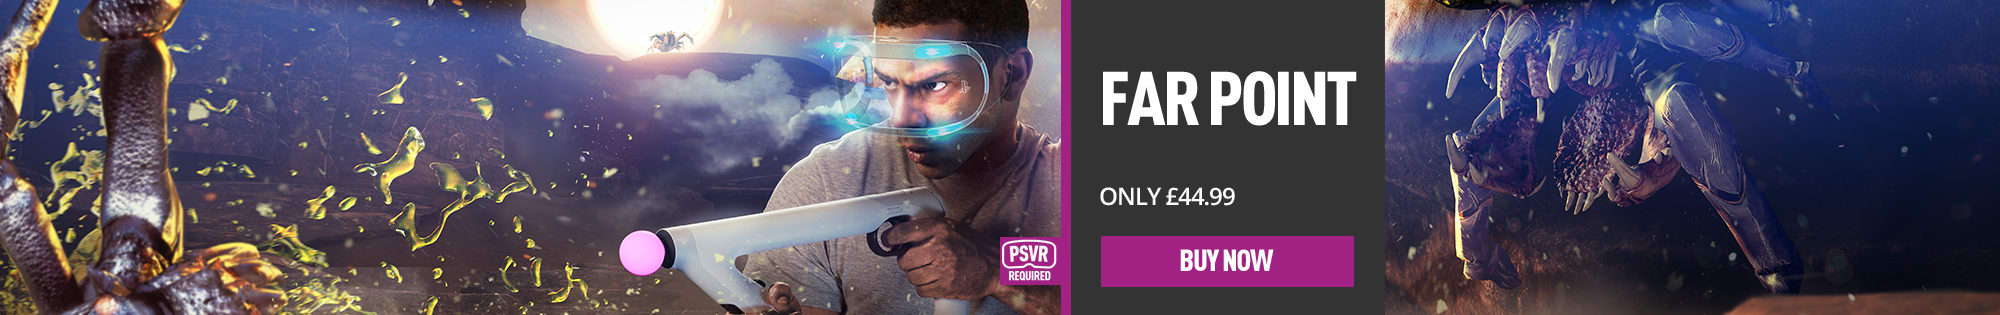 Farpoint for PlayStation 4 - Homepage Banner